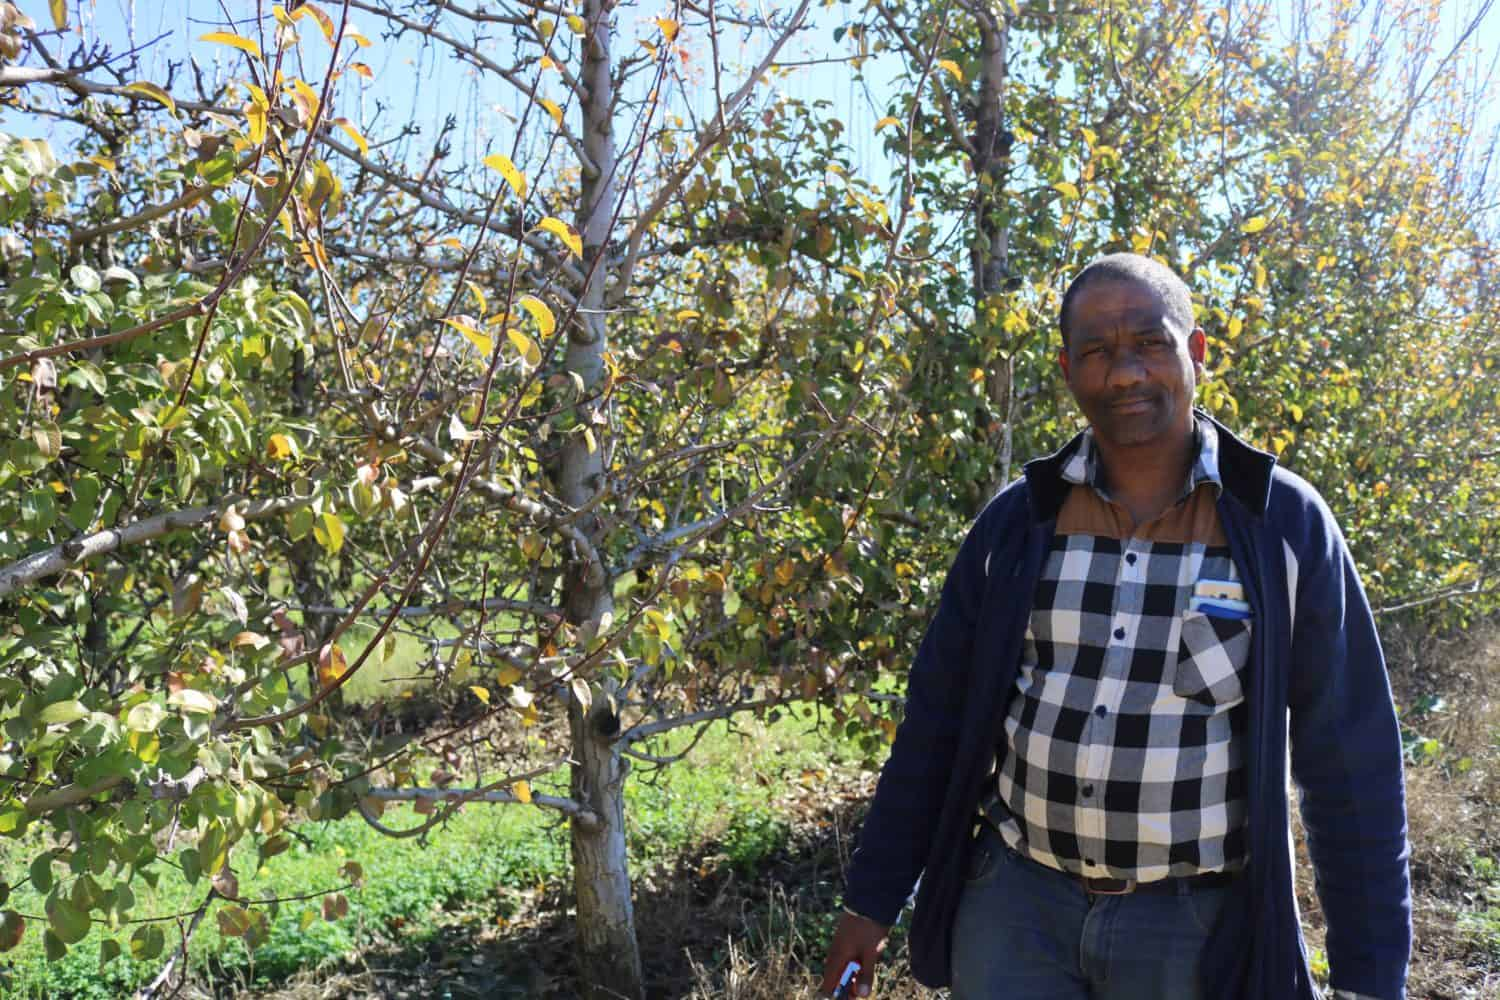 After 40 years of building his knowledge and aspiring to farm for himself, Western Cape farmer Charles Pietersen is finally where he wants to be.